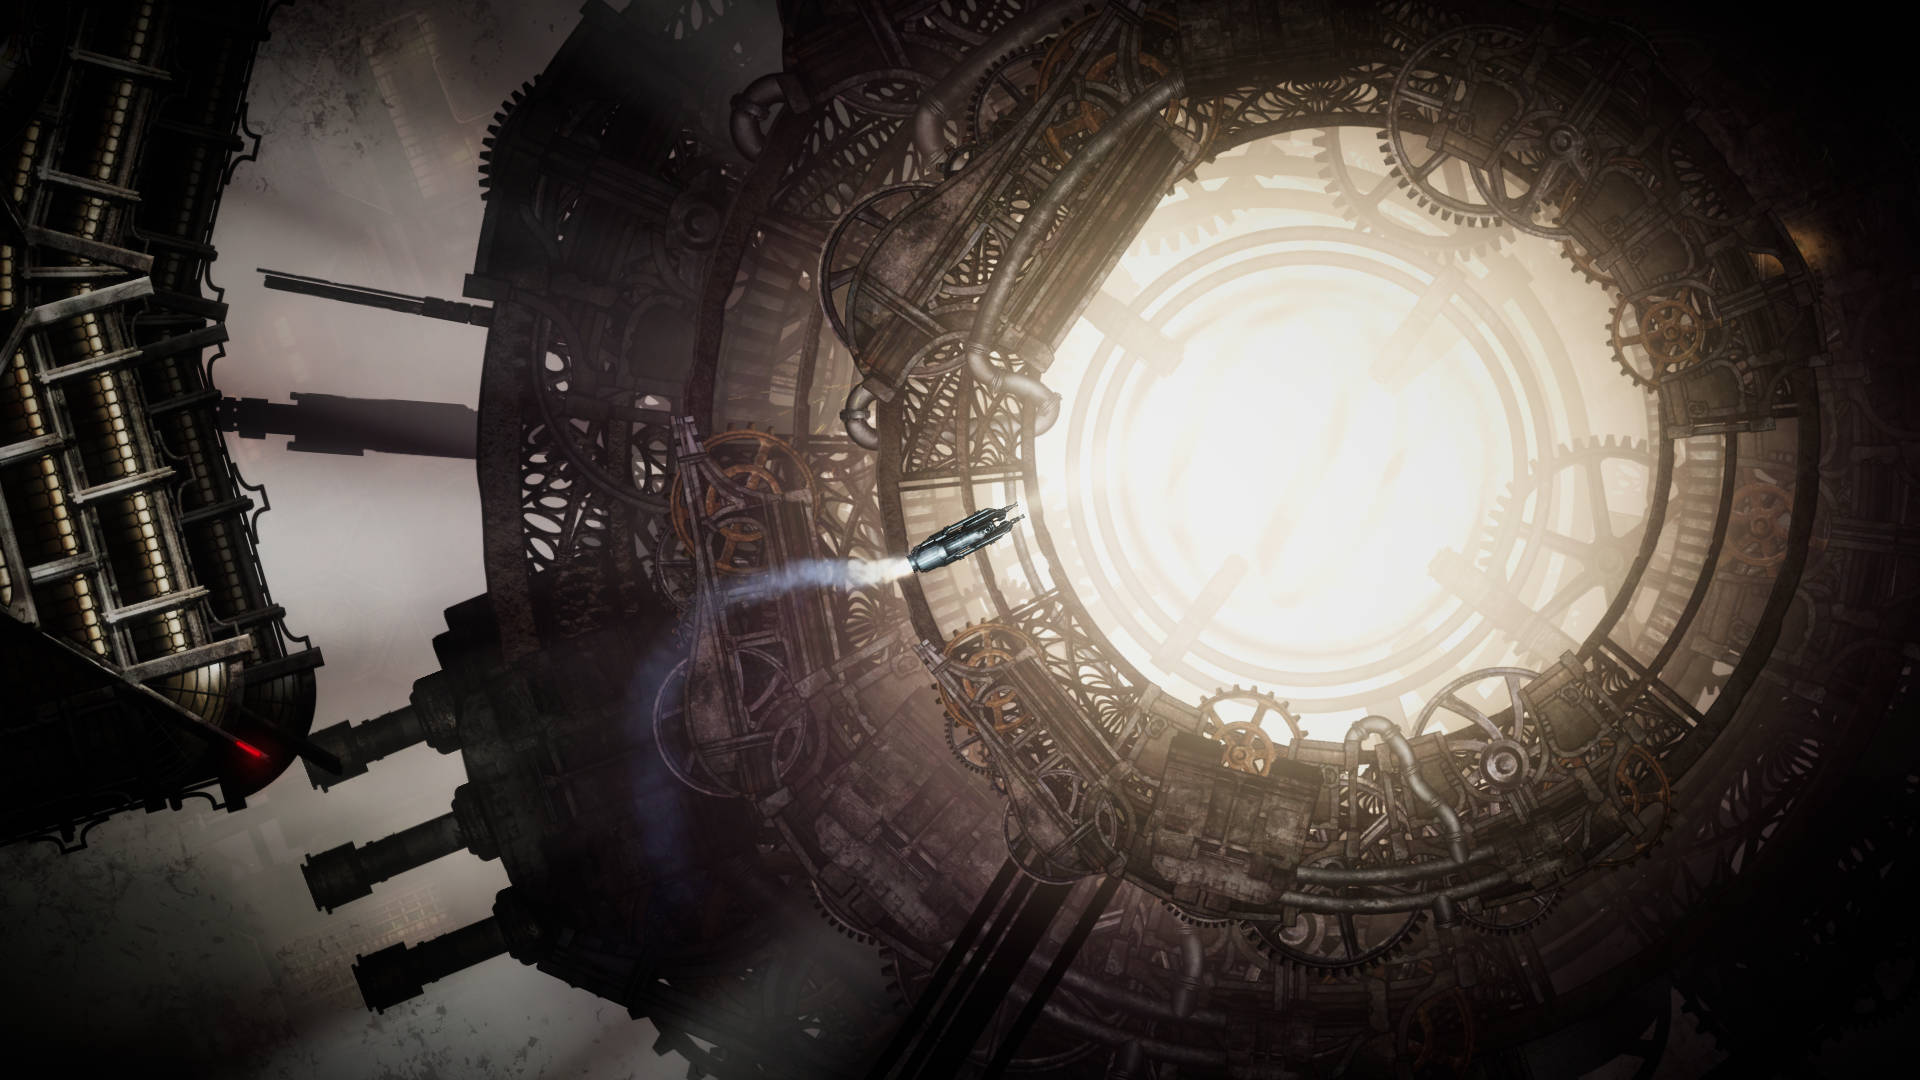 Sunless Skies screenshot of a train flying through space near a steampunk-style portal of light.